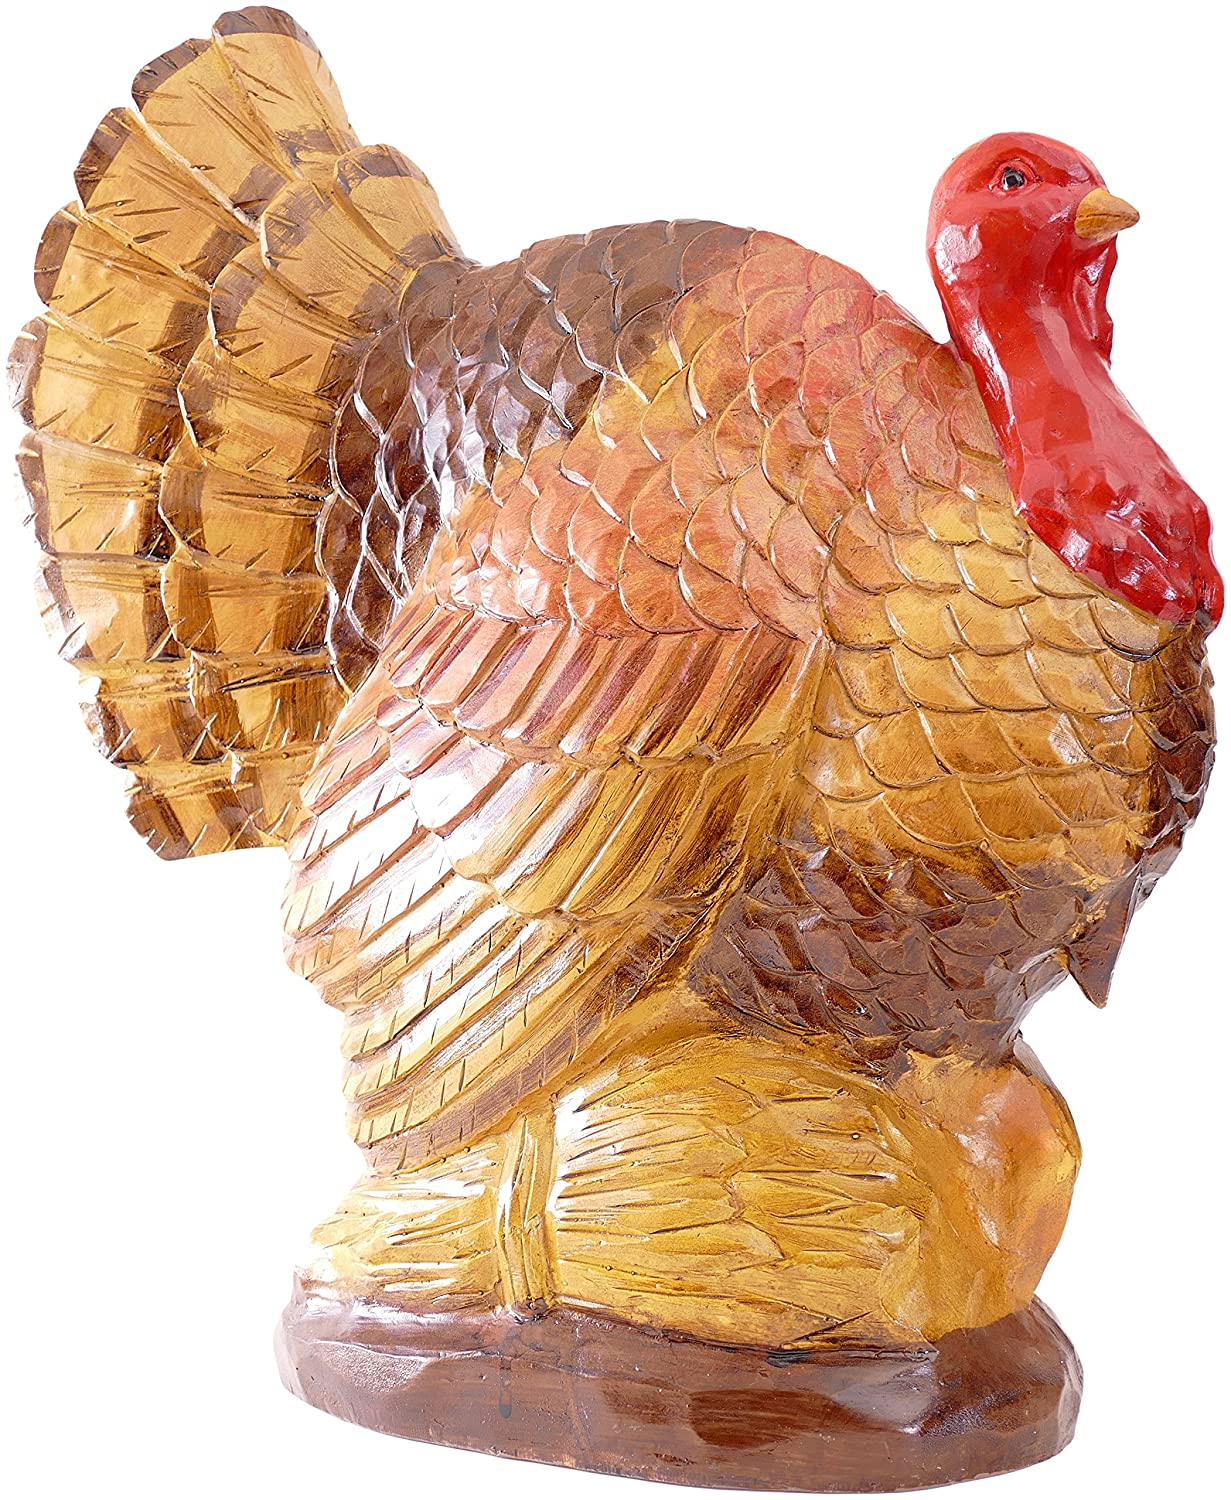 Thanksgiving Fall Harvest Turkey Figurine Centerpiece Sculpture